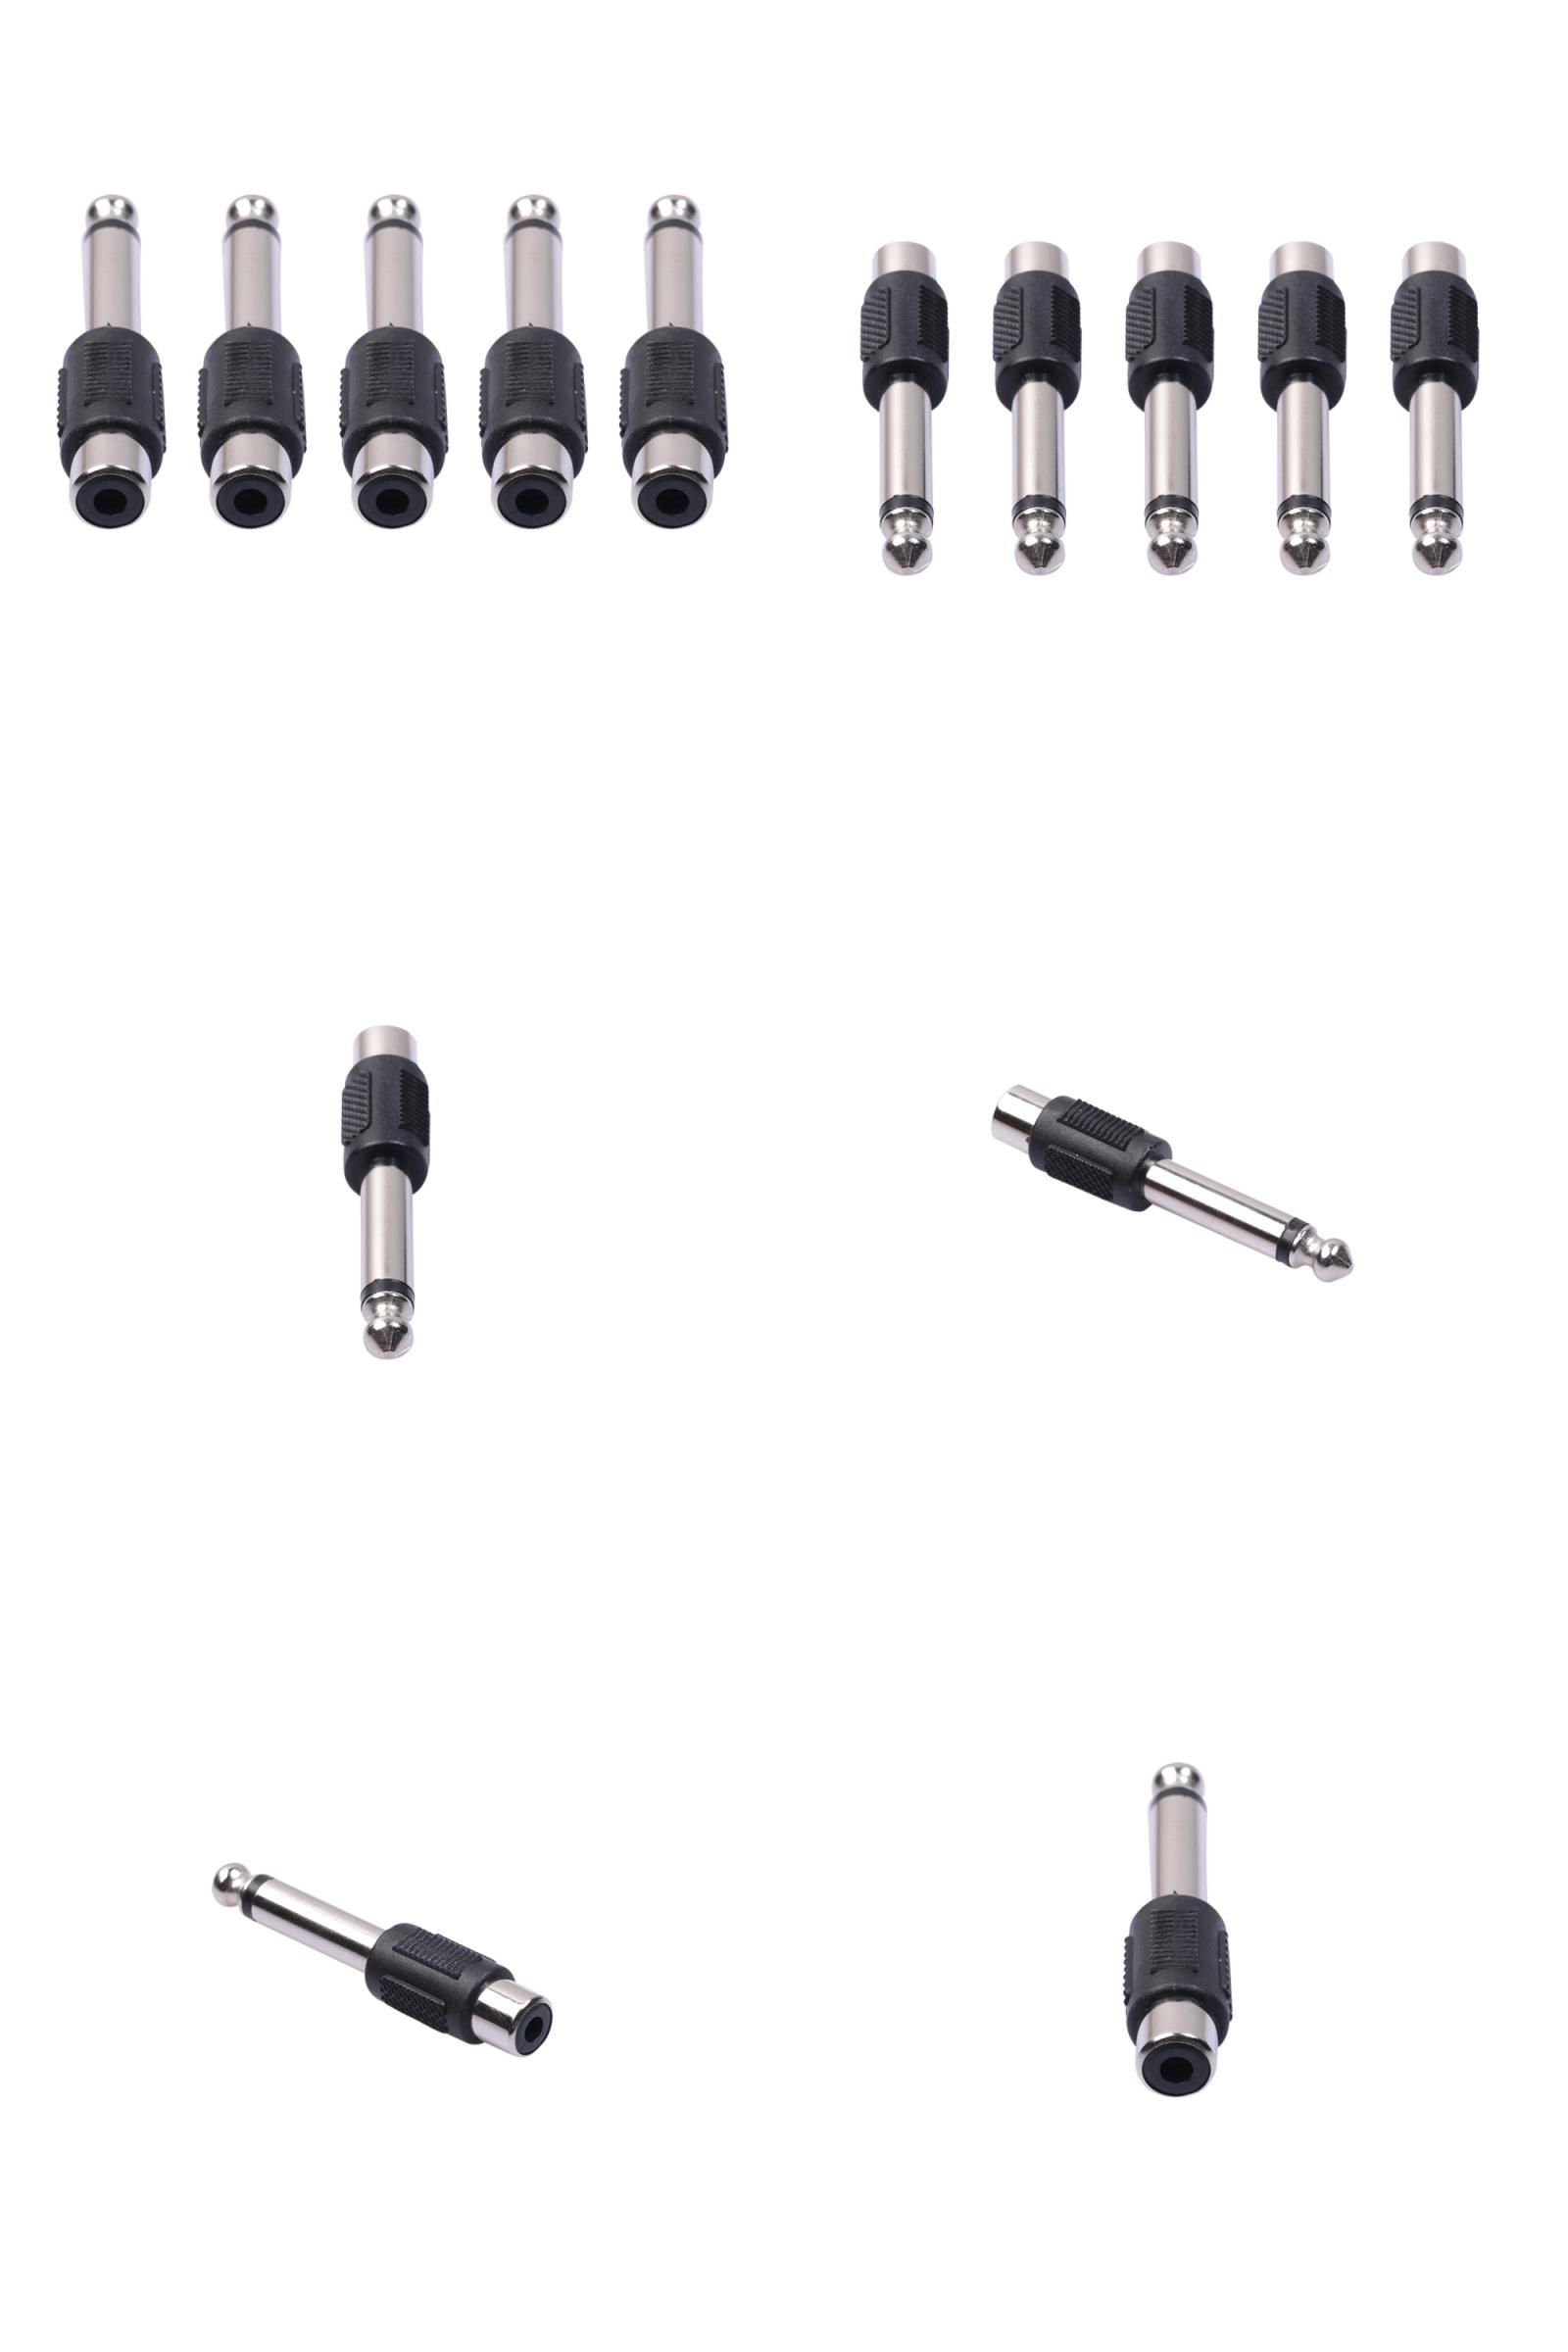 Pin On Cables Amp Connectors